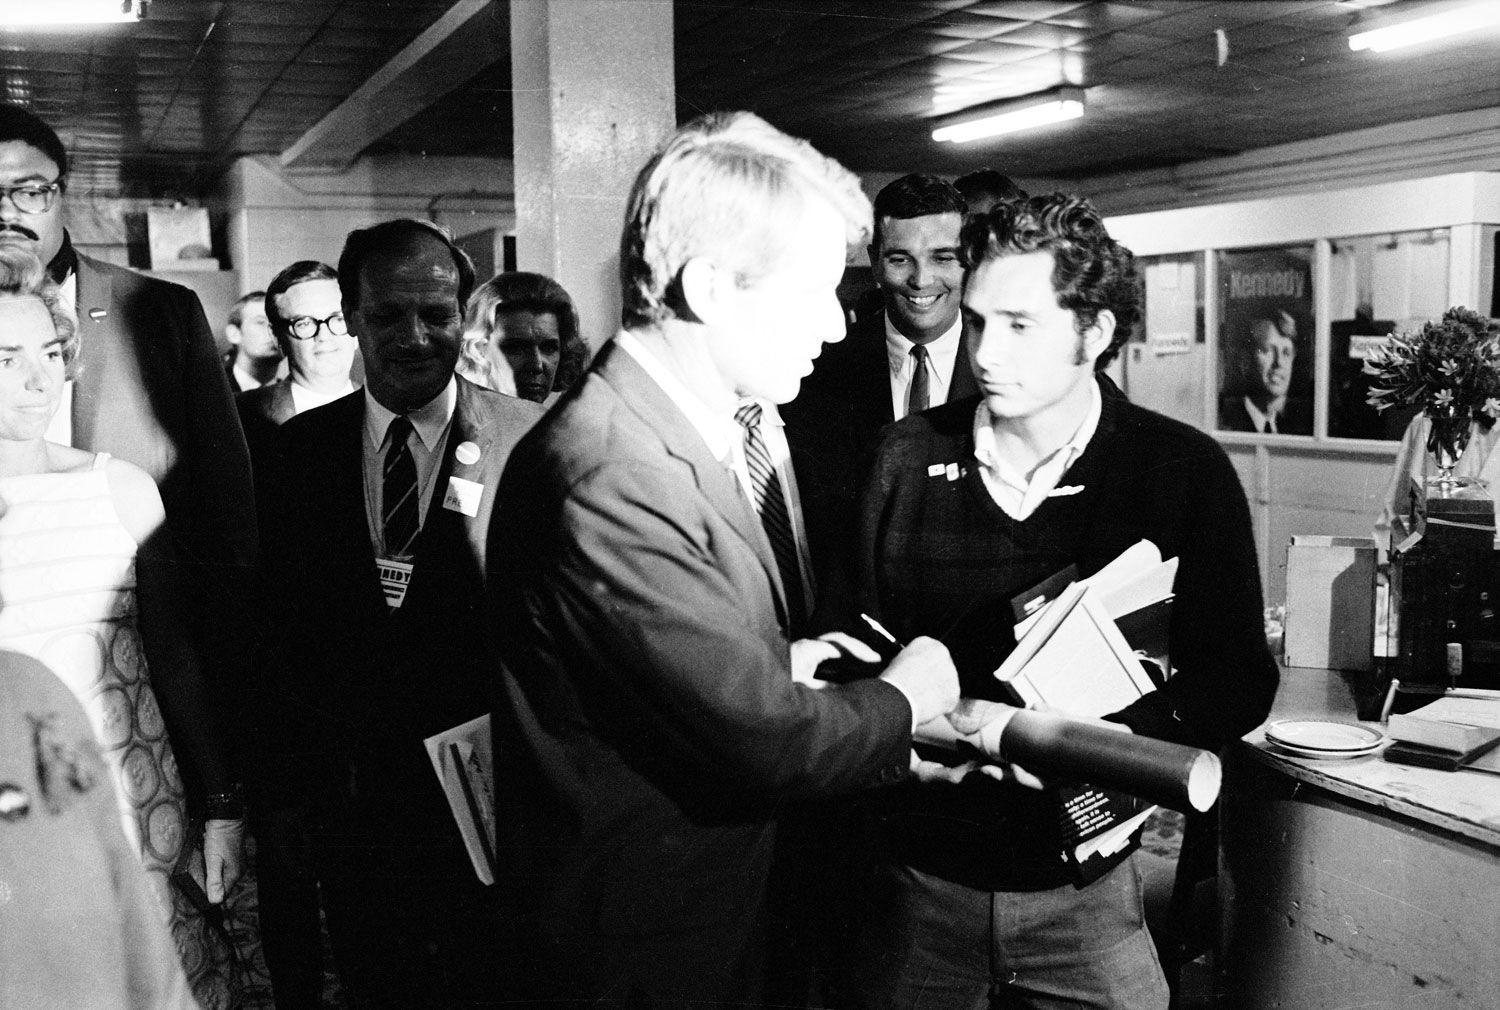 """Heading for his victory speech in the Ambassador Hotel ... Robert Kennedy Assassination"